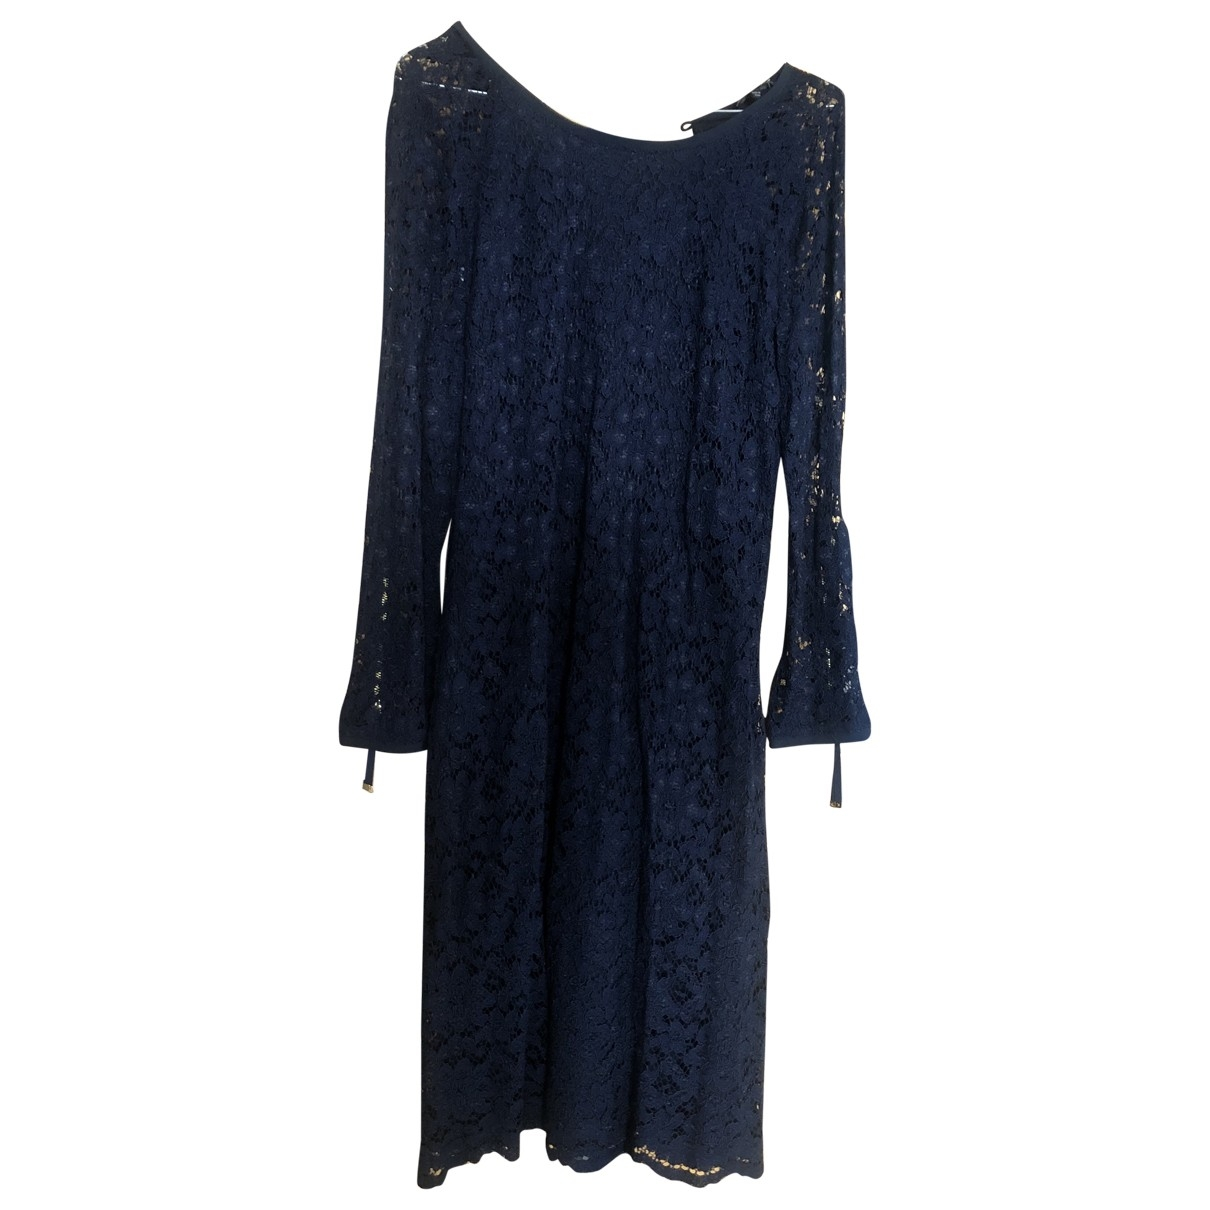 Juicy Couture \N Blue Lace dress for Women 8 US